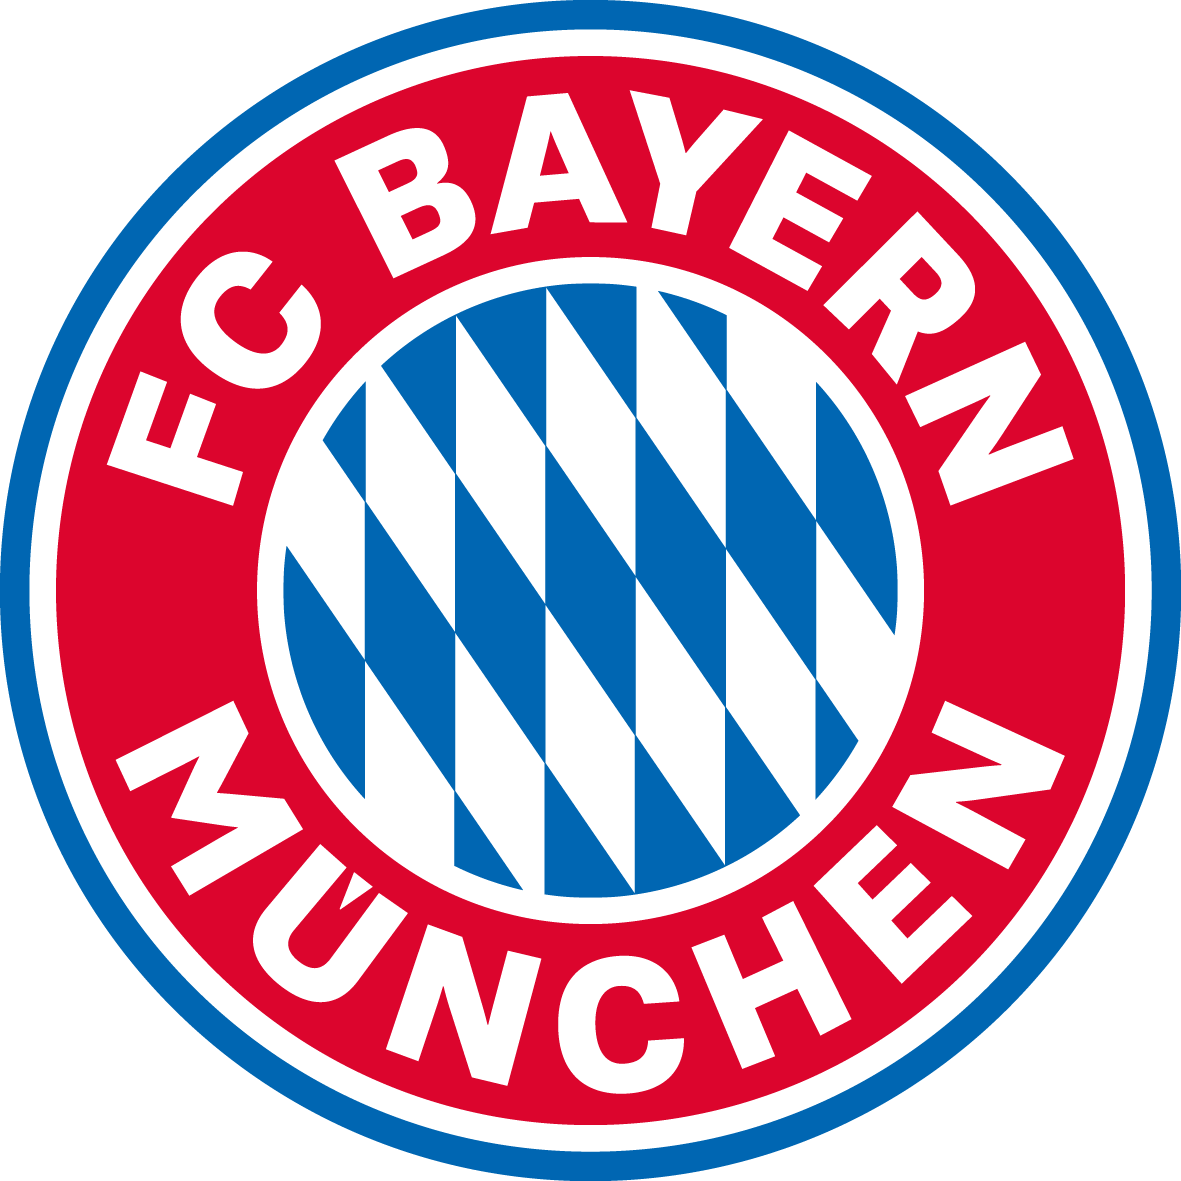 Bayern's new logo, ripped from Facebook